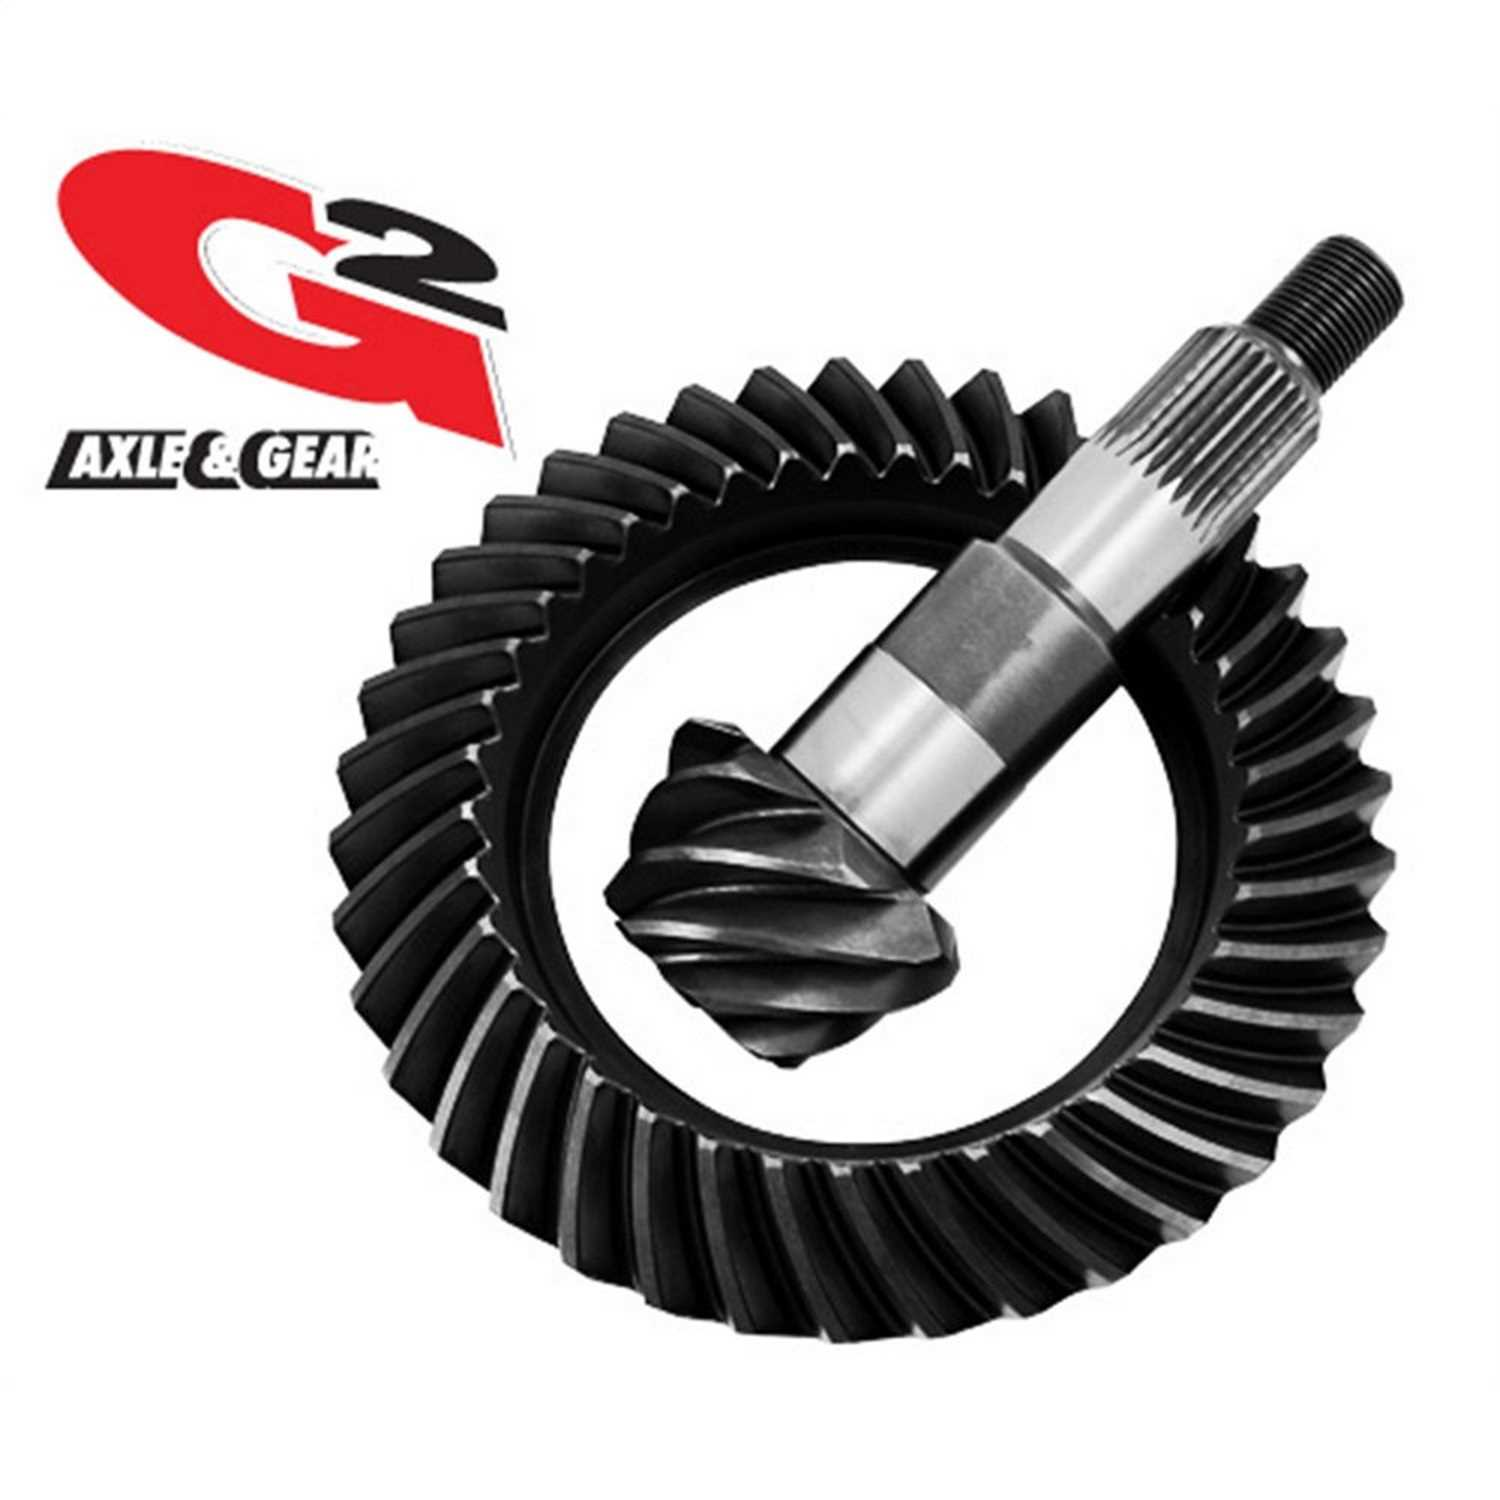 2-2014-308 G2 Axle and Gear Ring and Pinion Set